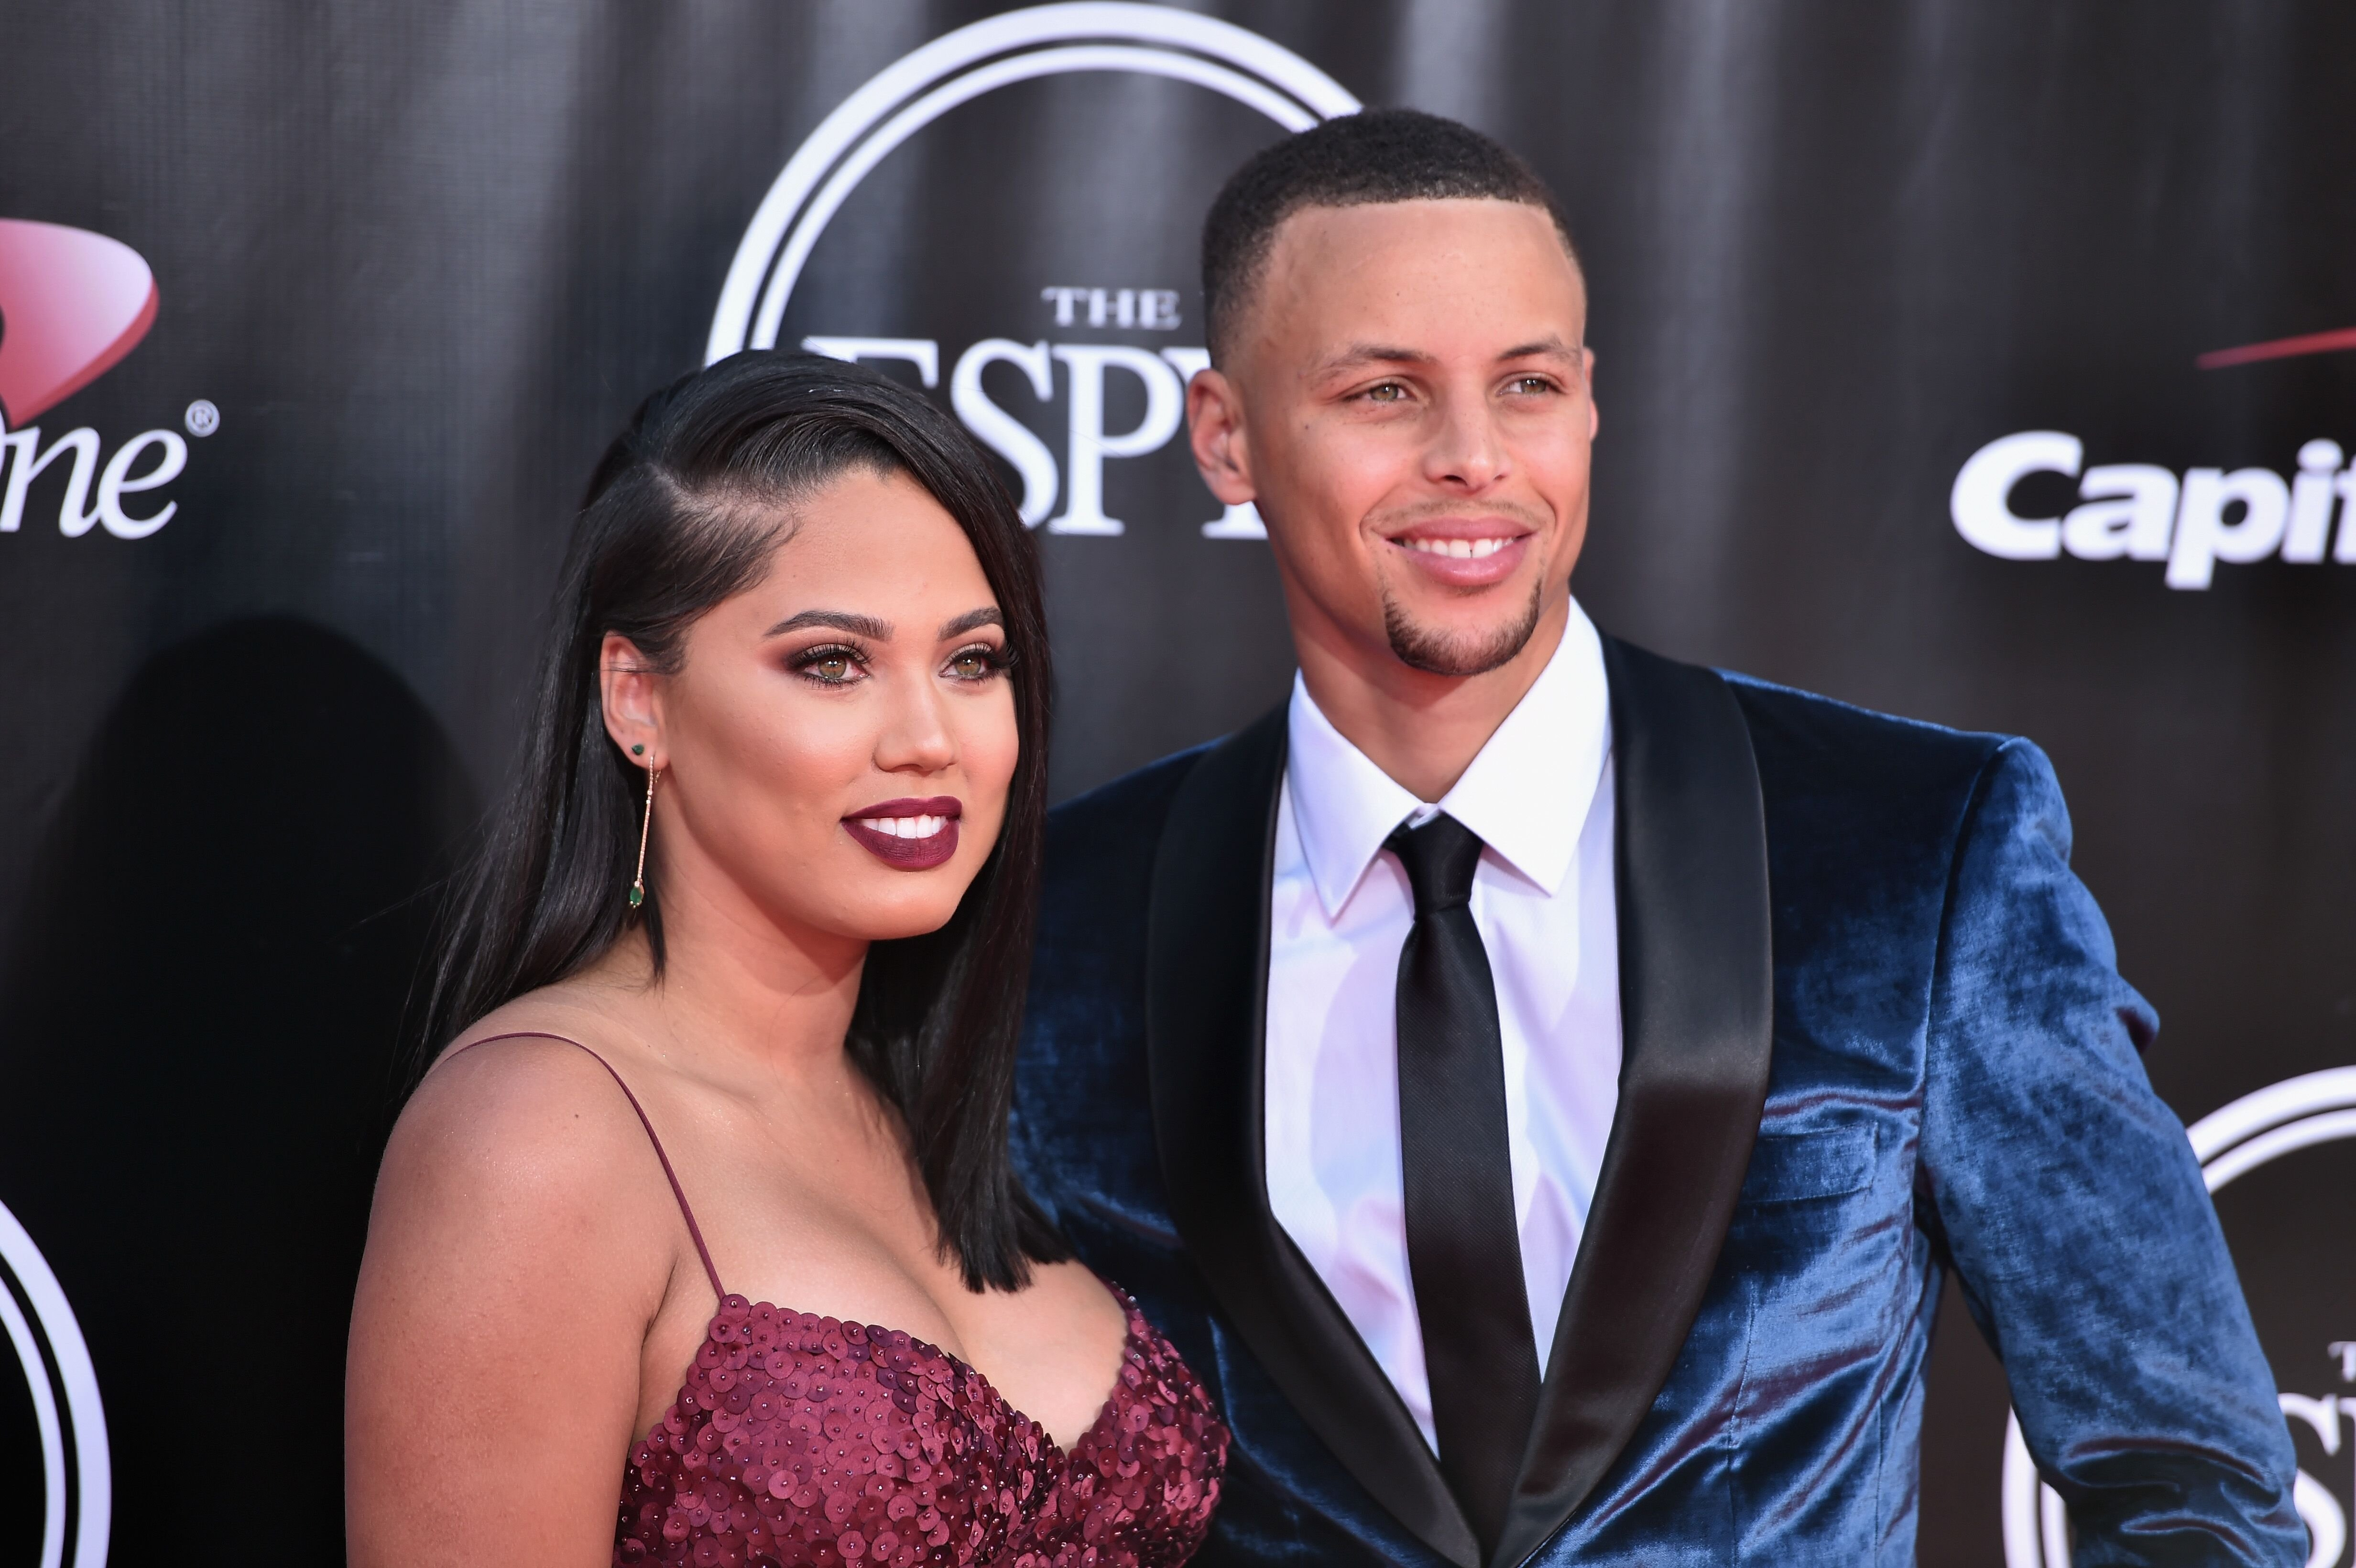 Stephen Curry and Ayesha Curry attend the 2016 ESPYS at Microsoft Theater on July 13, 2016 in Los Angeles, California | Photo: Getty Images